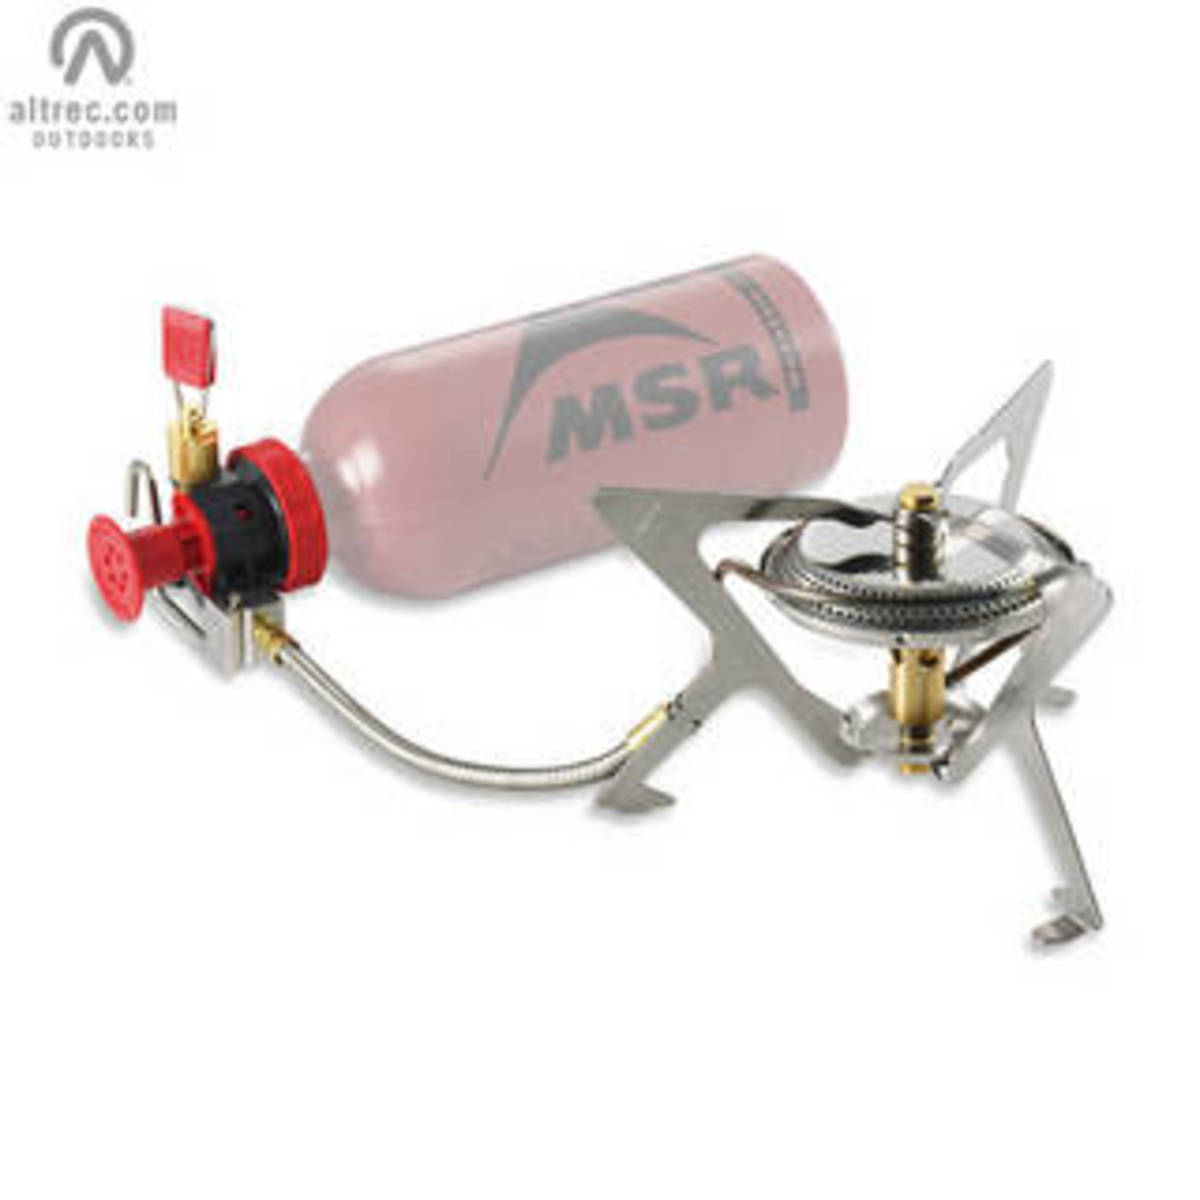 MSR SimmerLite Backpacking Stove